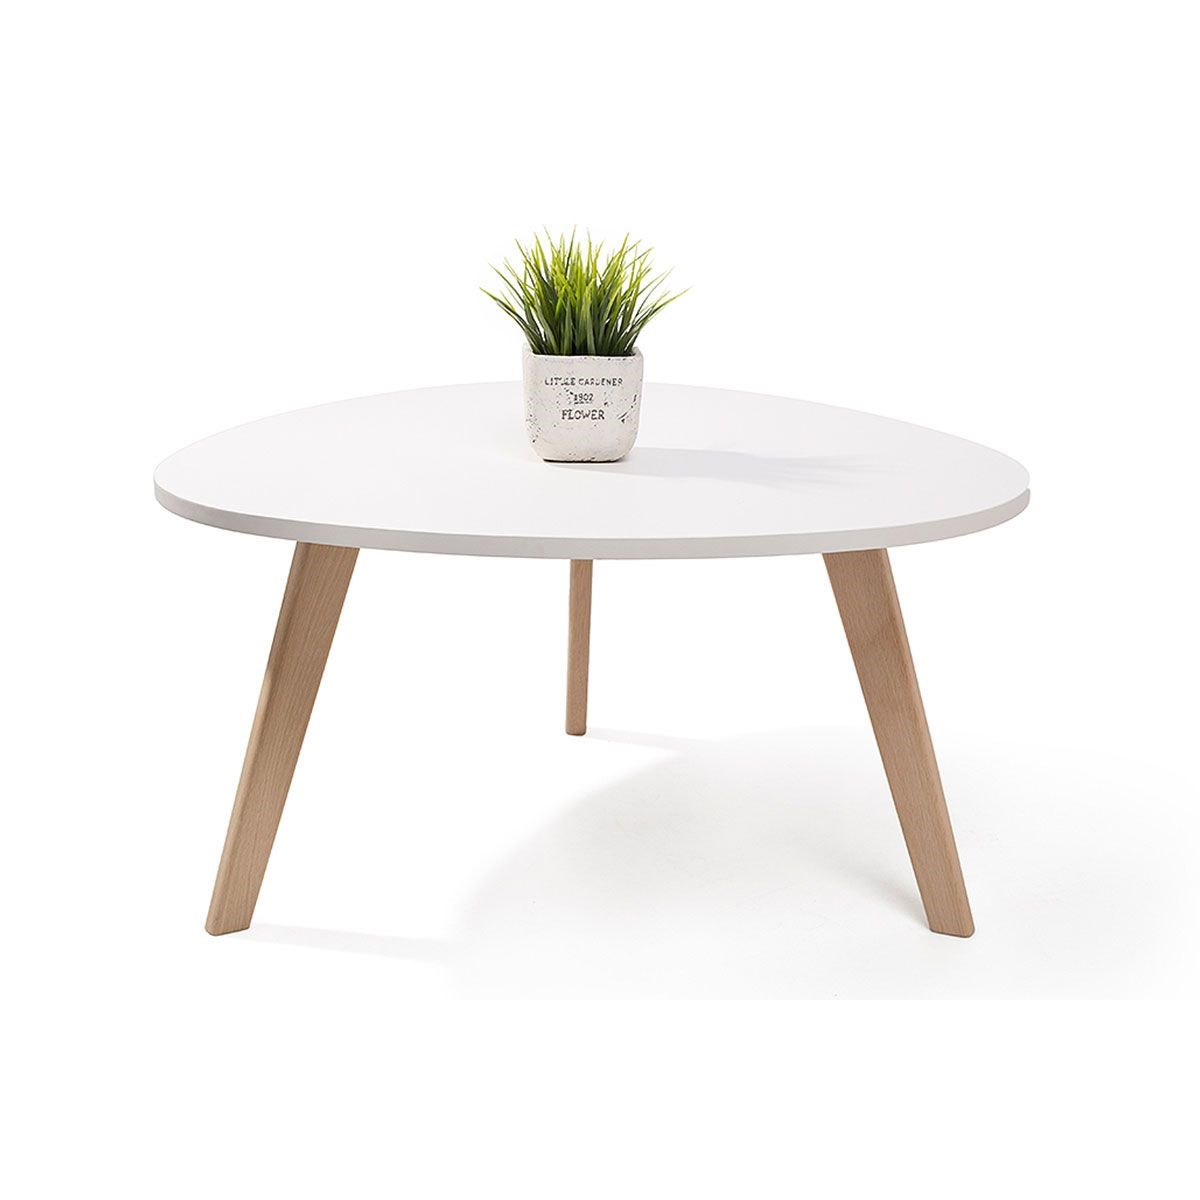 Table basse scandinave alta for Table scandinave bois